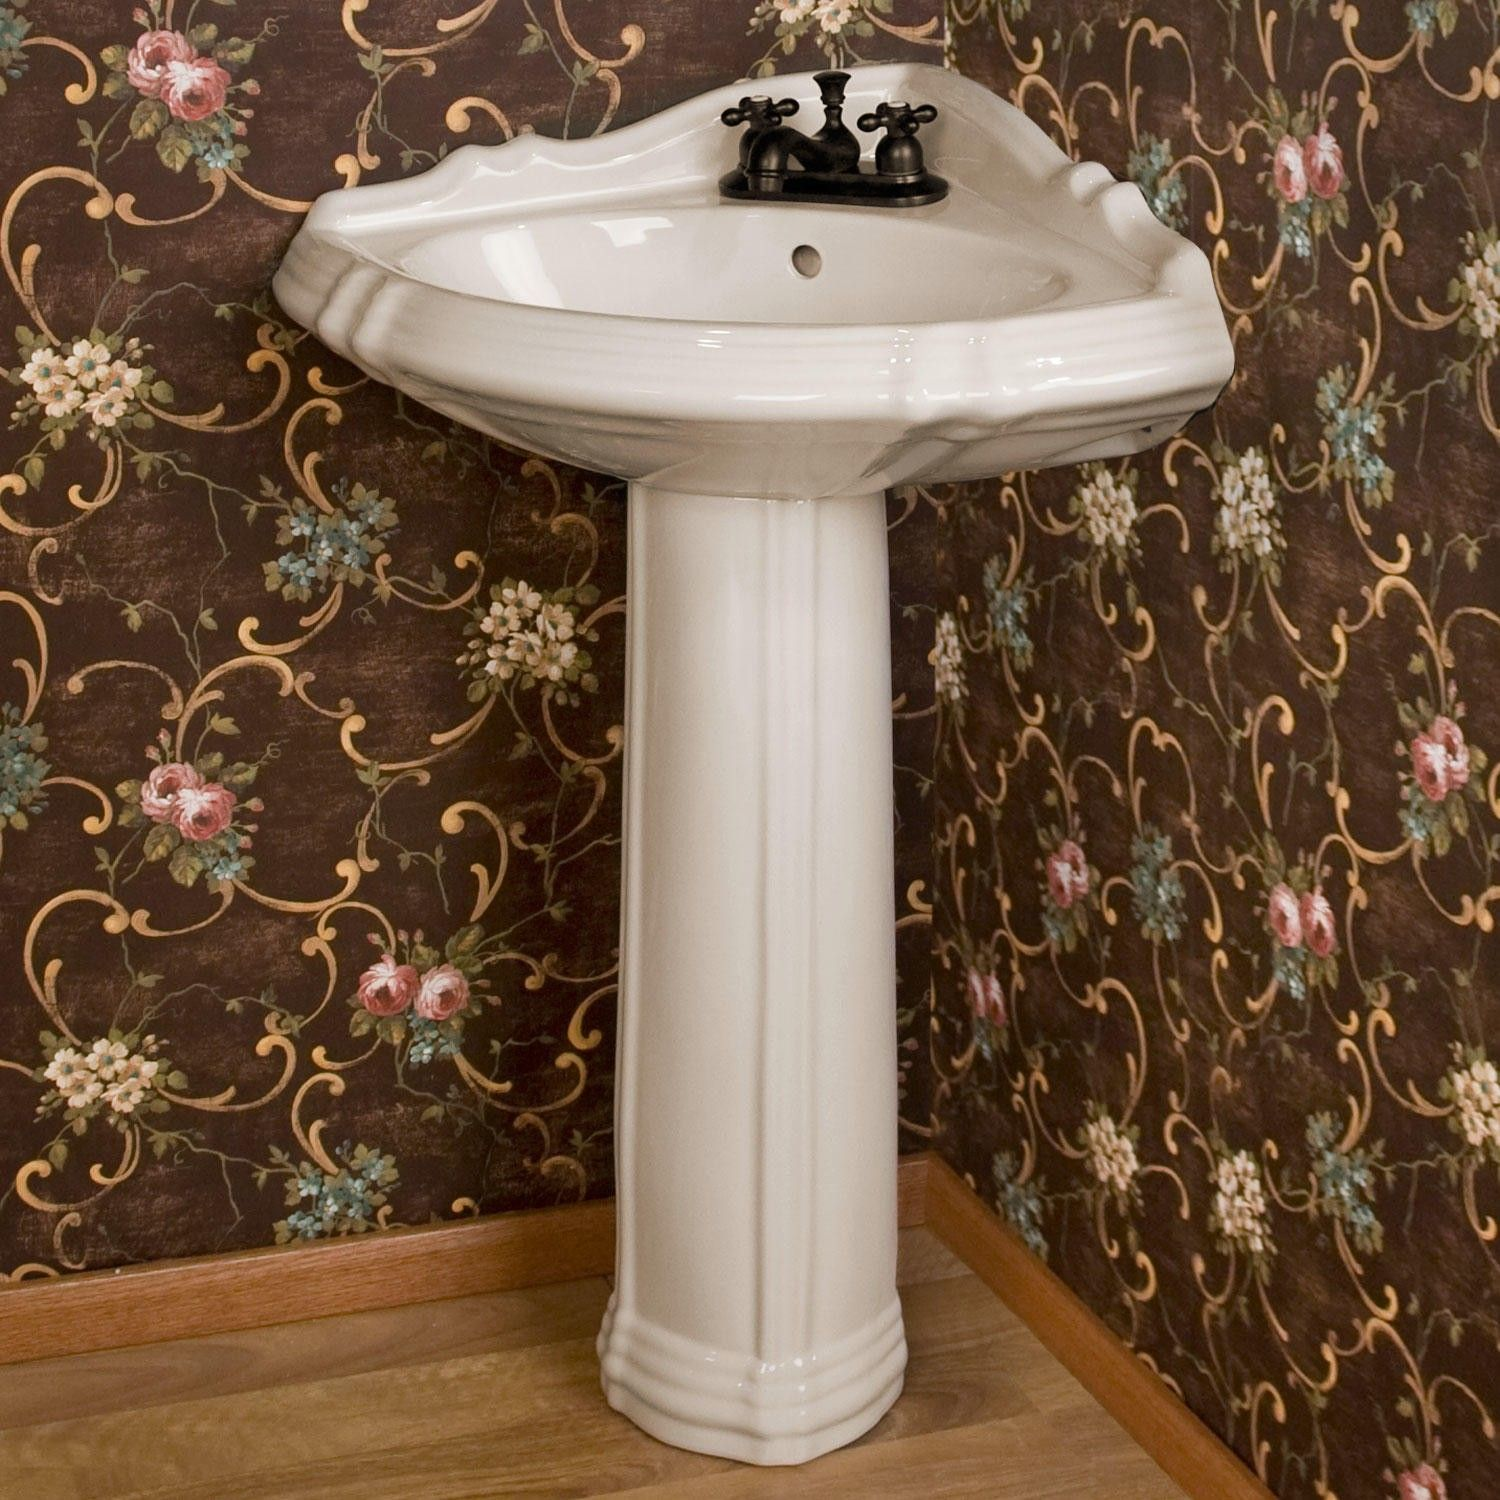 REGENT CORNER PEDESTAL SINK Starting at 17995